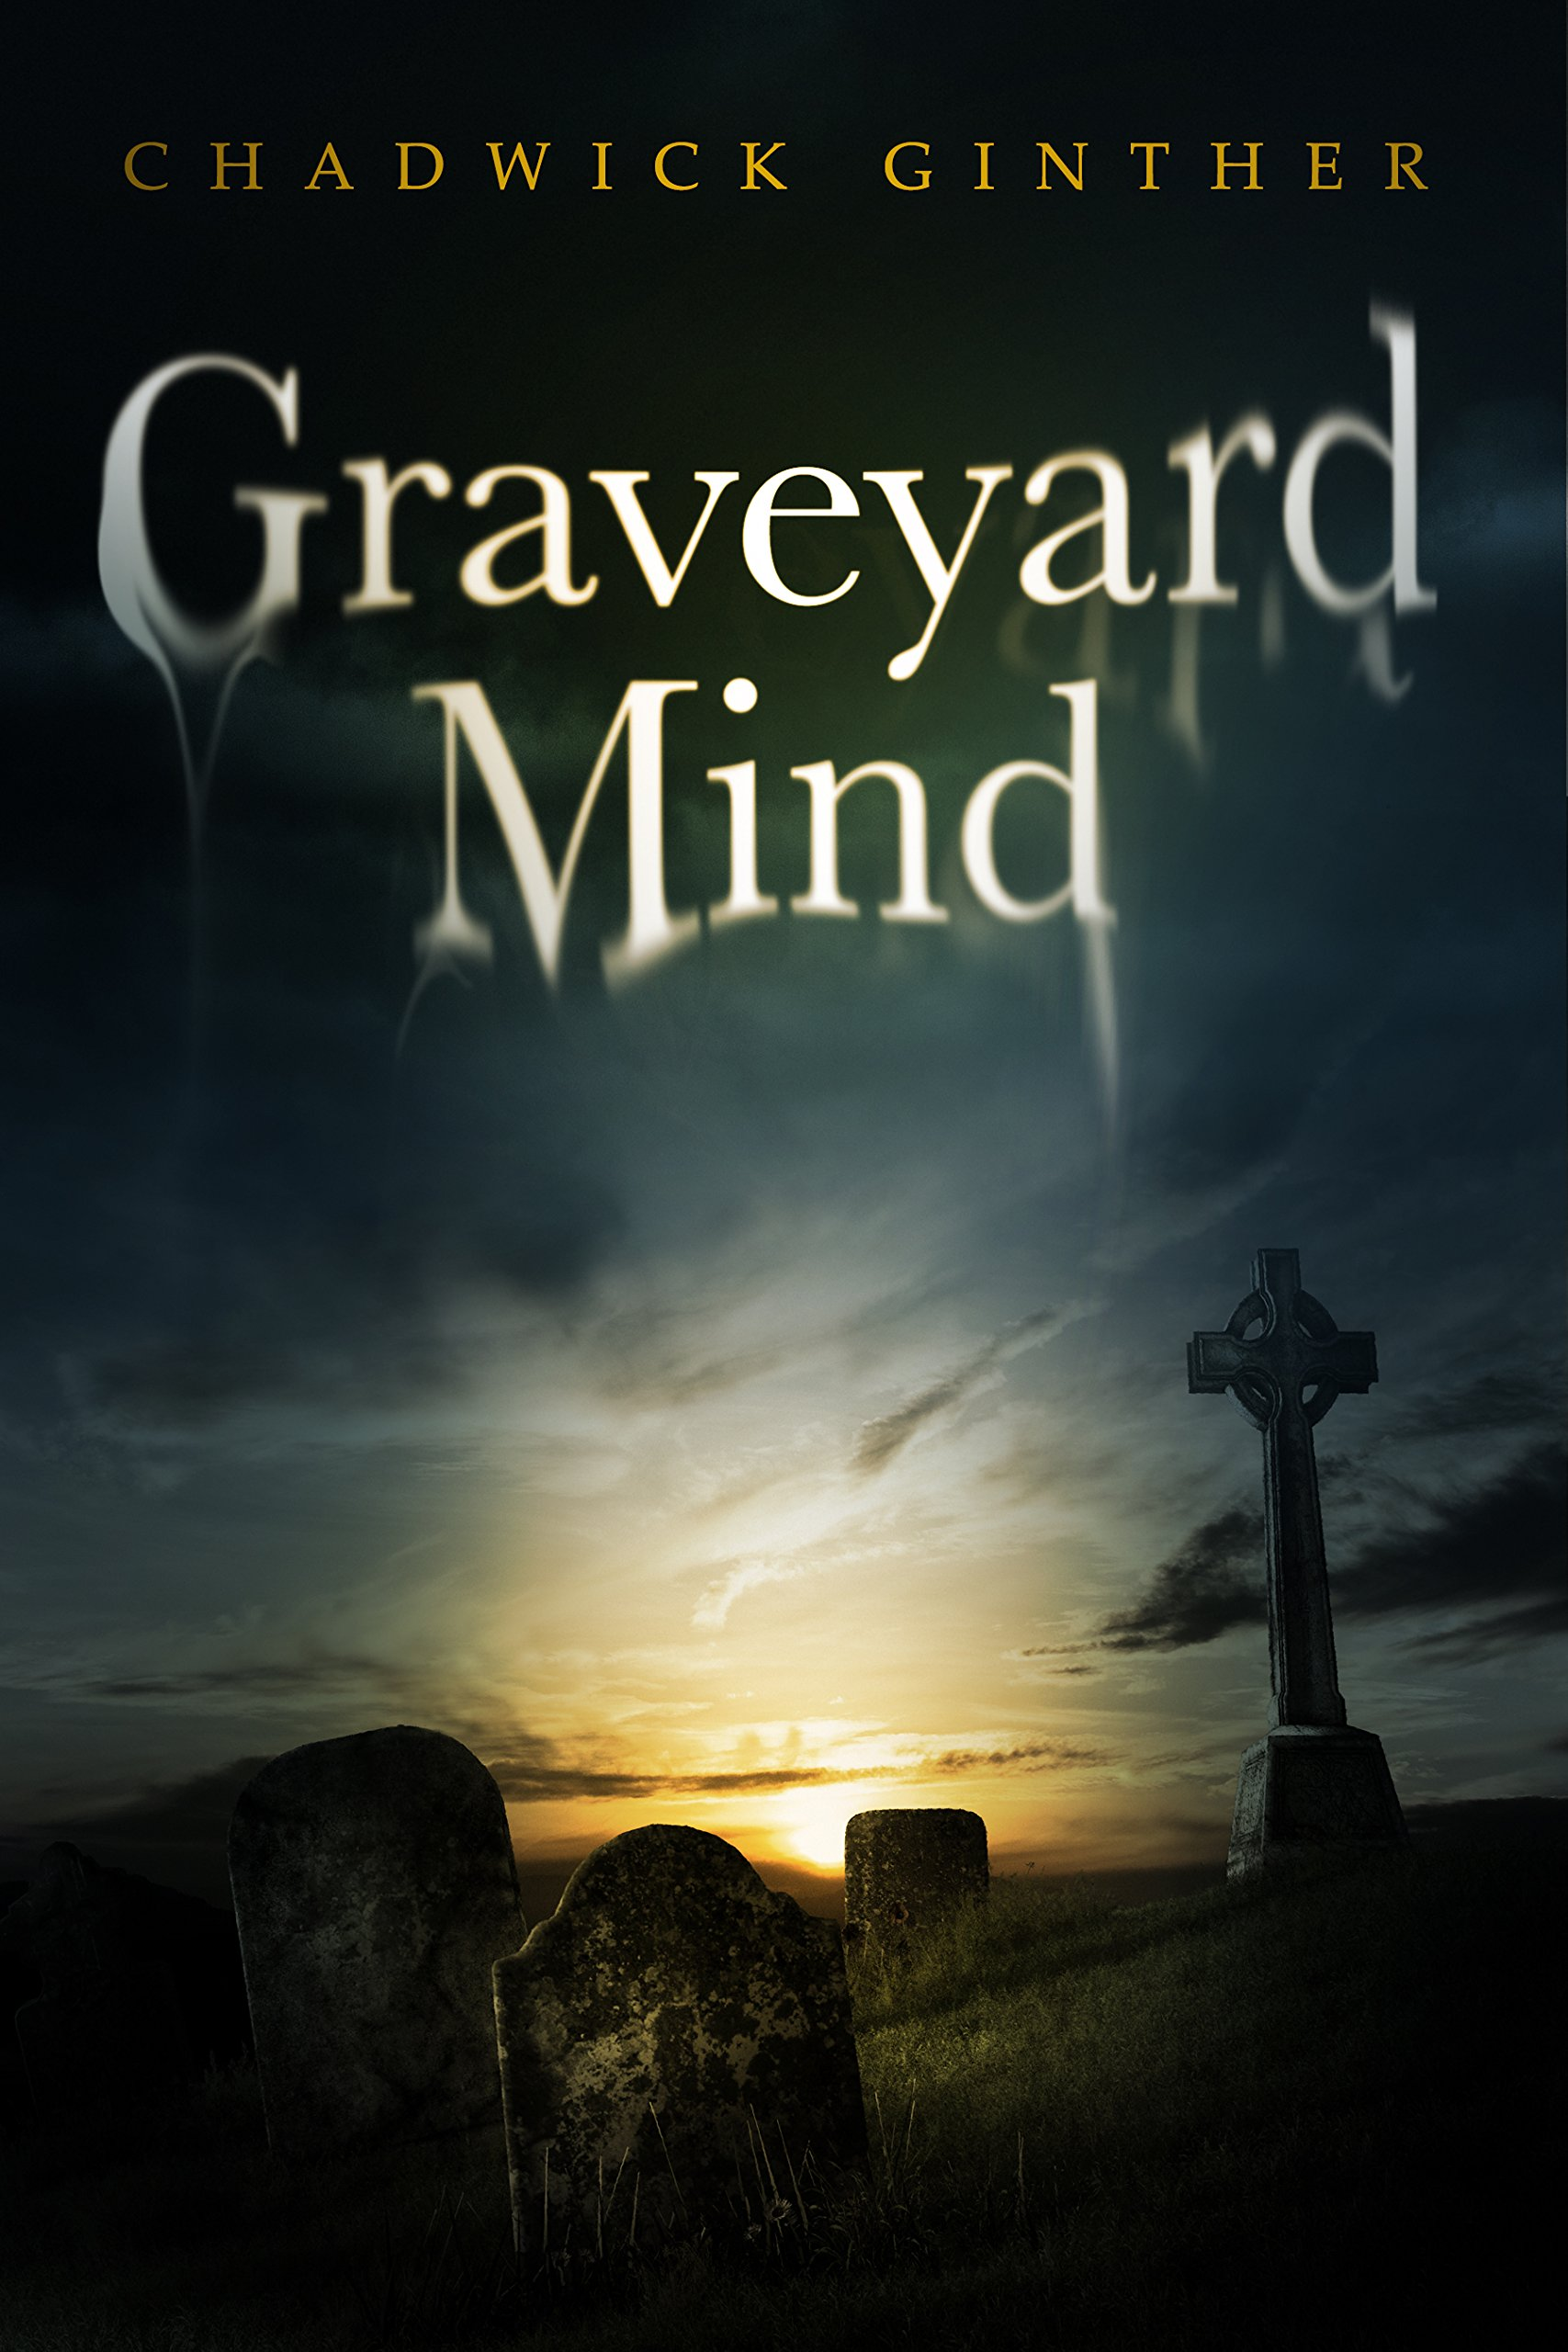 Season 7, Episode 4 – A Review of Graveyard Mind by Chadwick Ginther